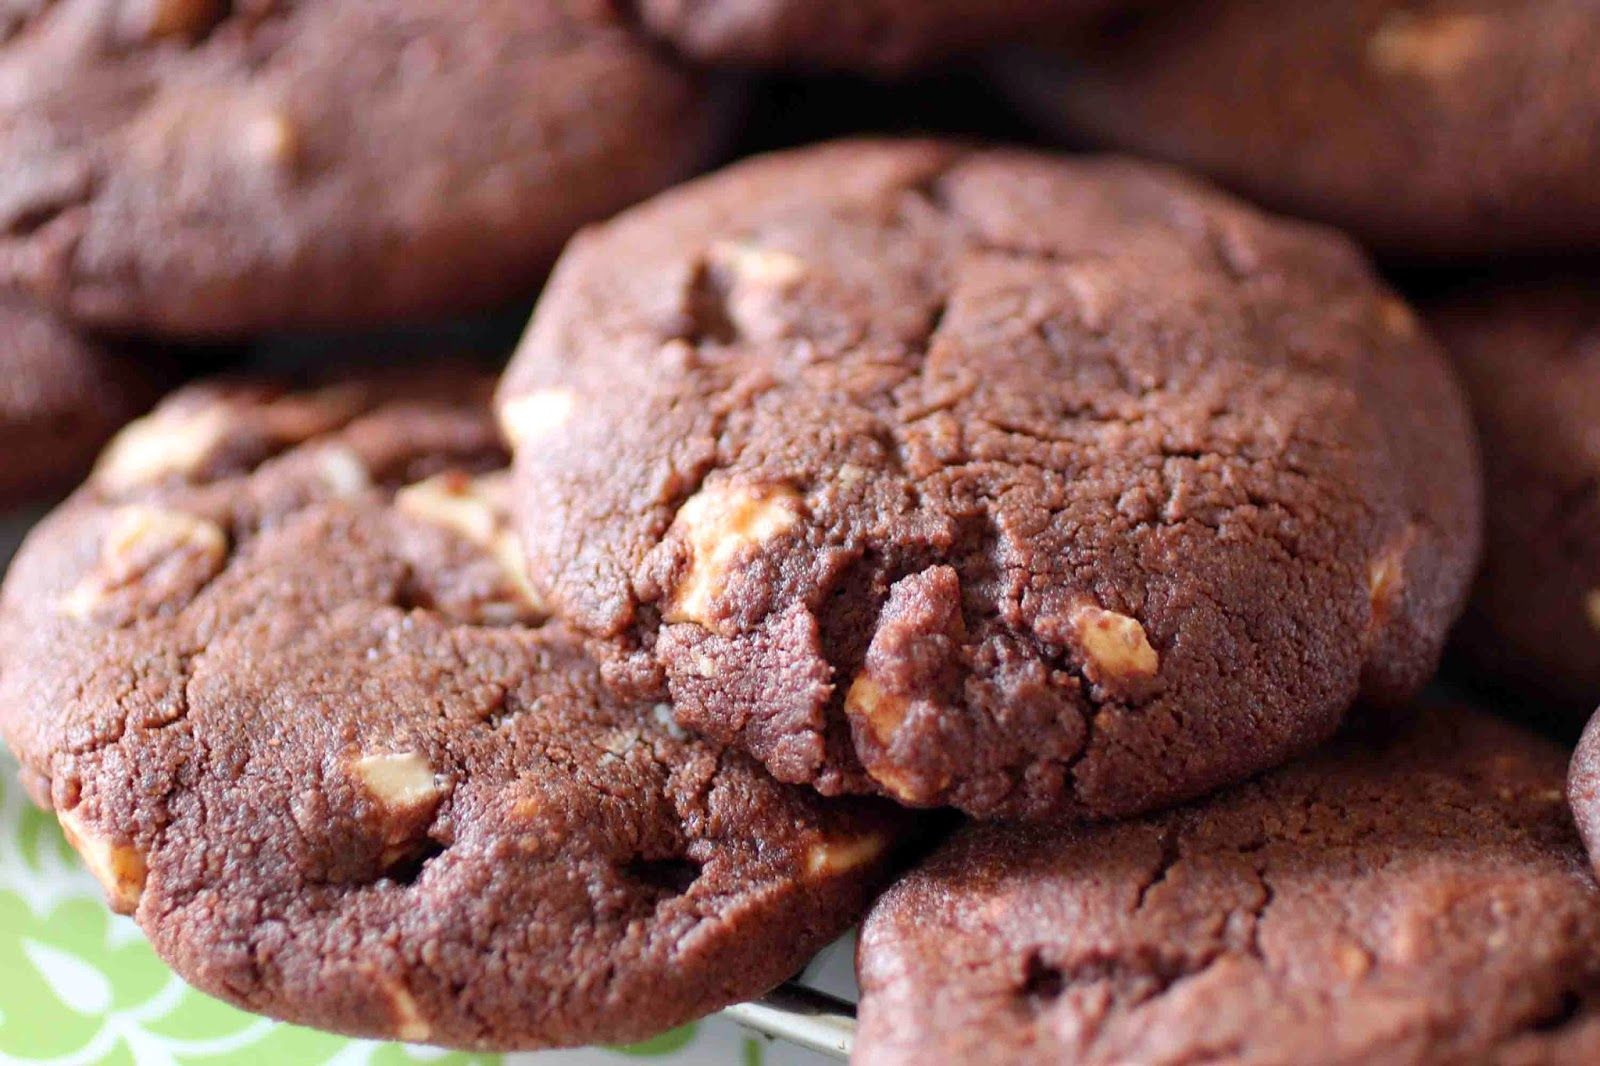 http://camilleenchocolat.blogspot.fr/2014/06/cookies-noirs-pepites-blanches.html